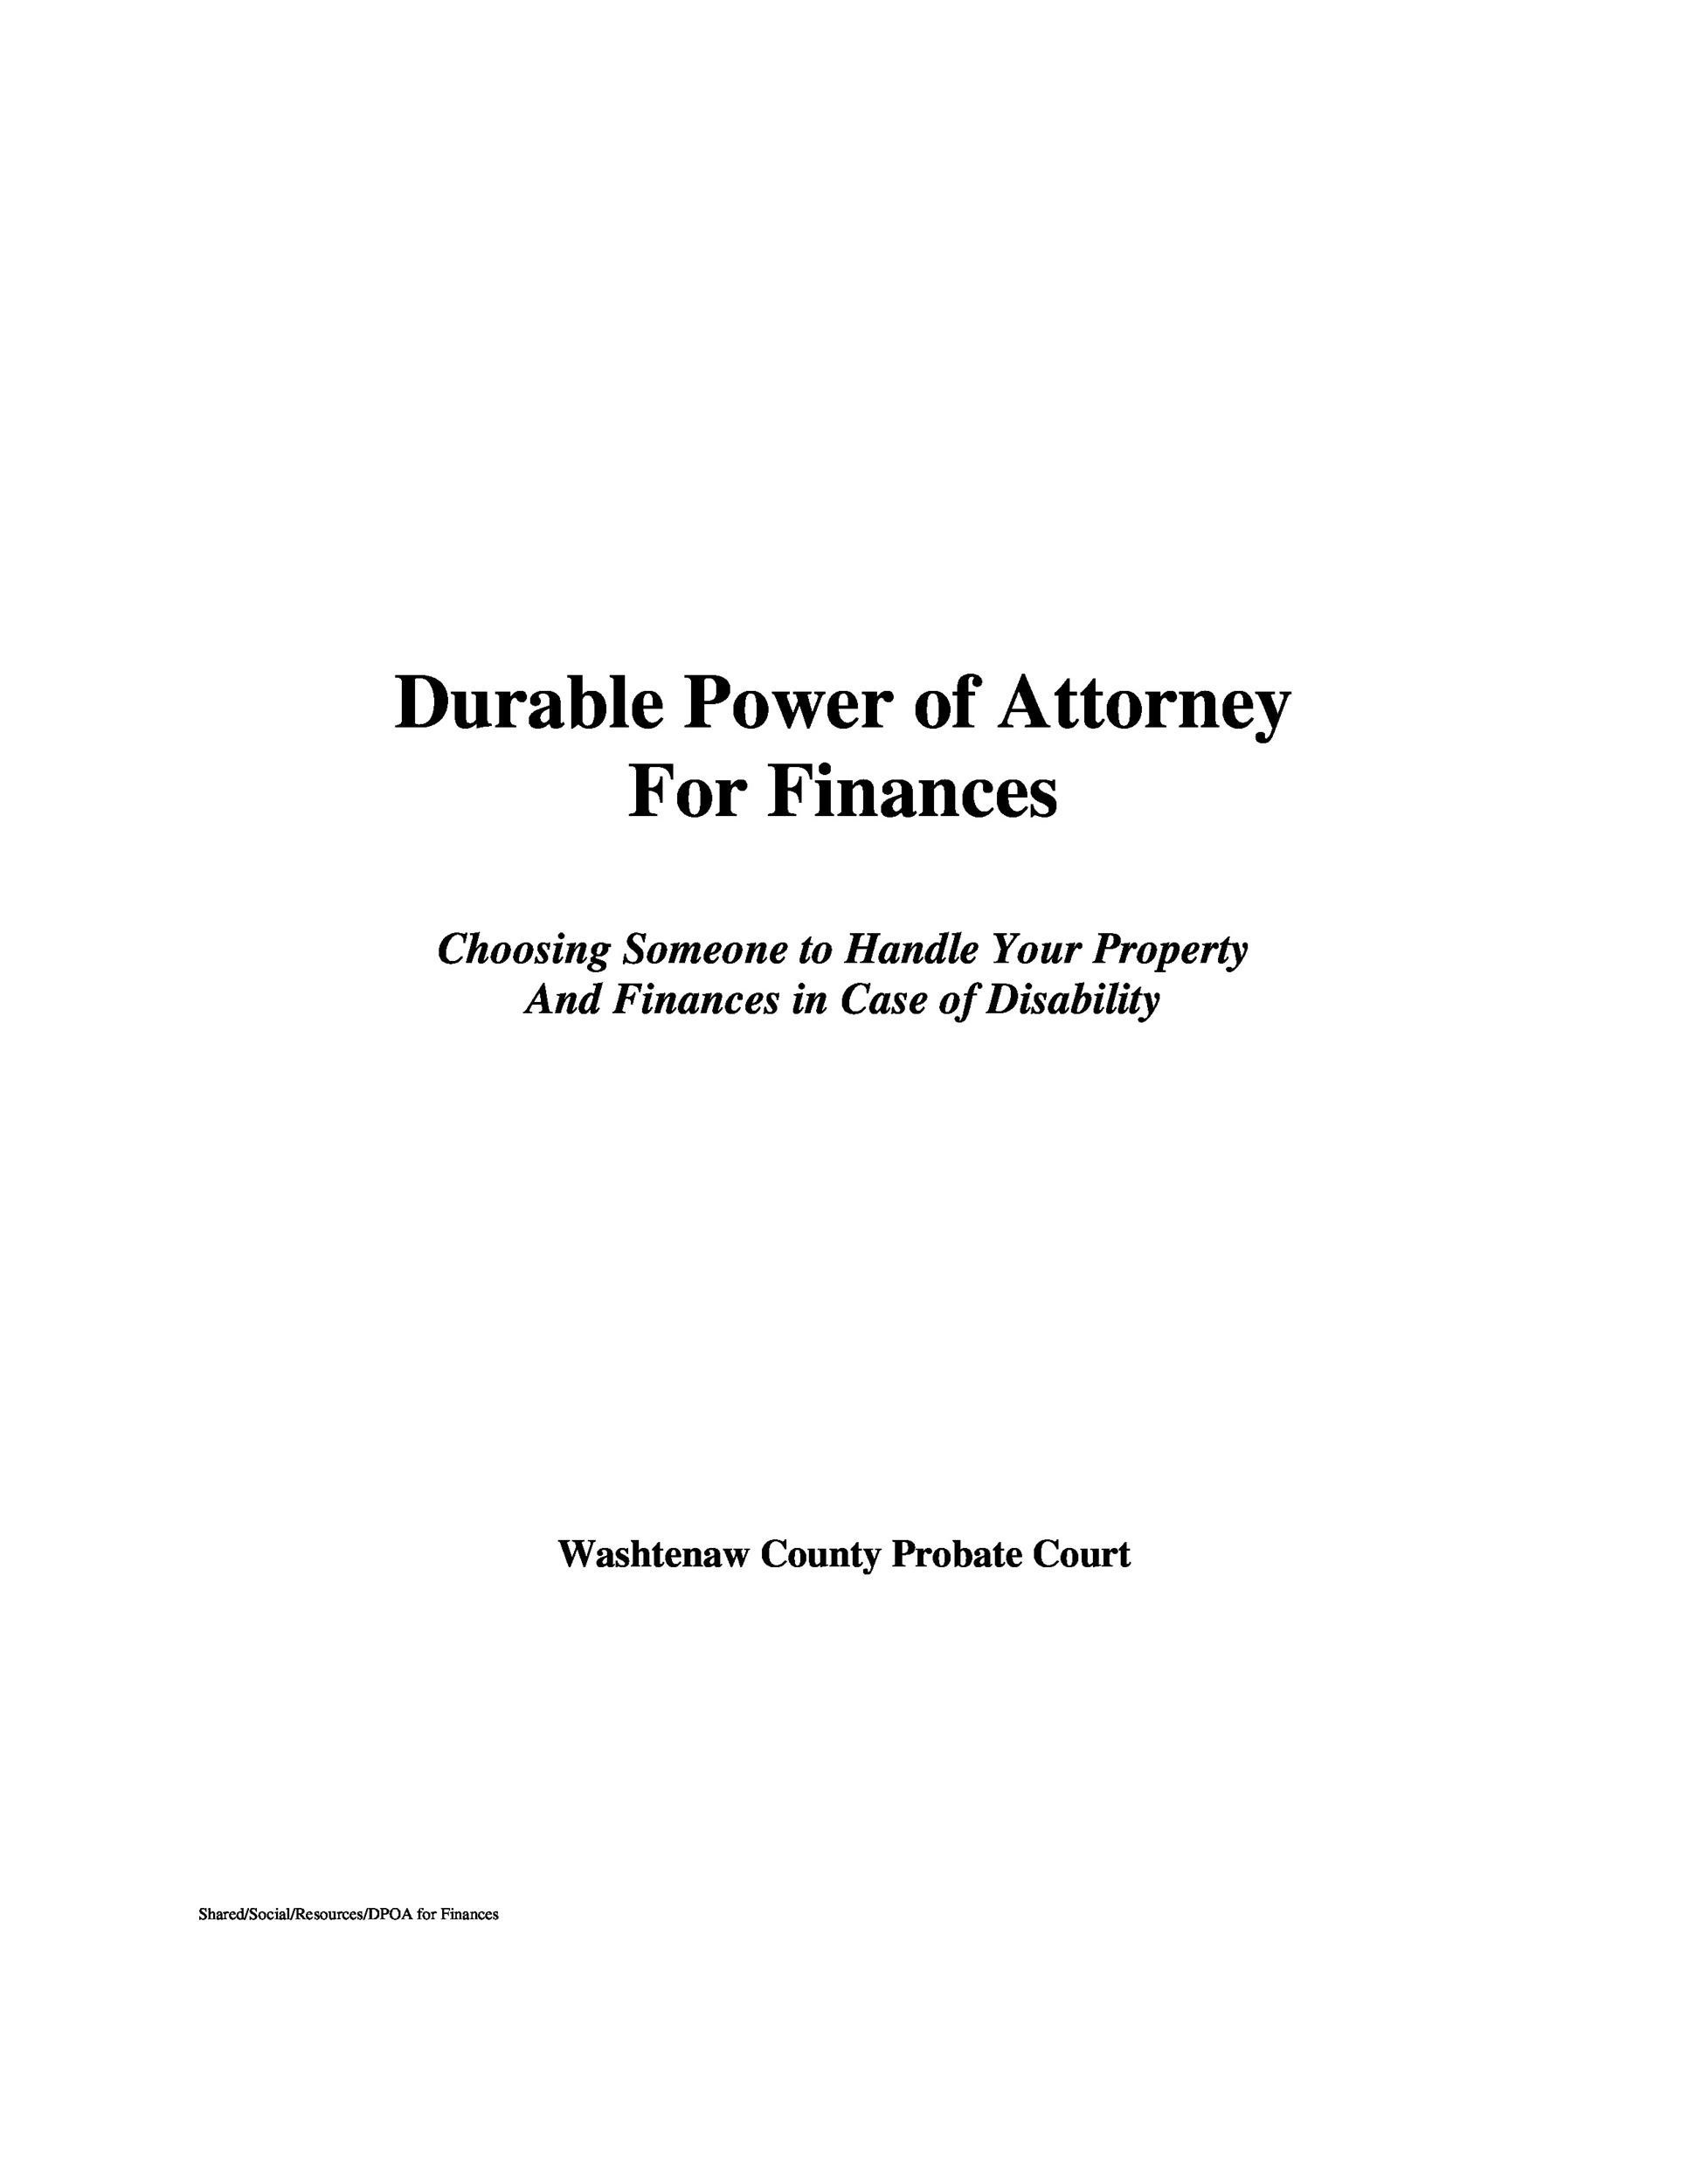 50 Free Power Of Attorney Forms Templates Durable Medicalgeneral